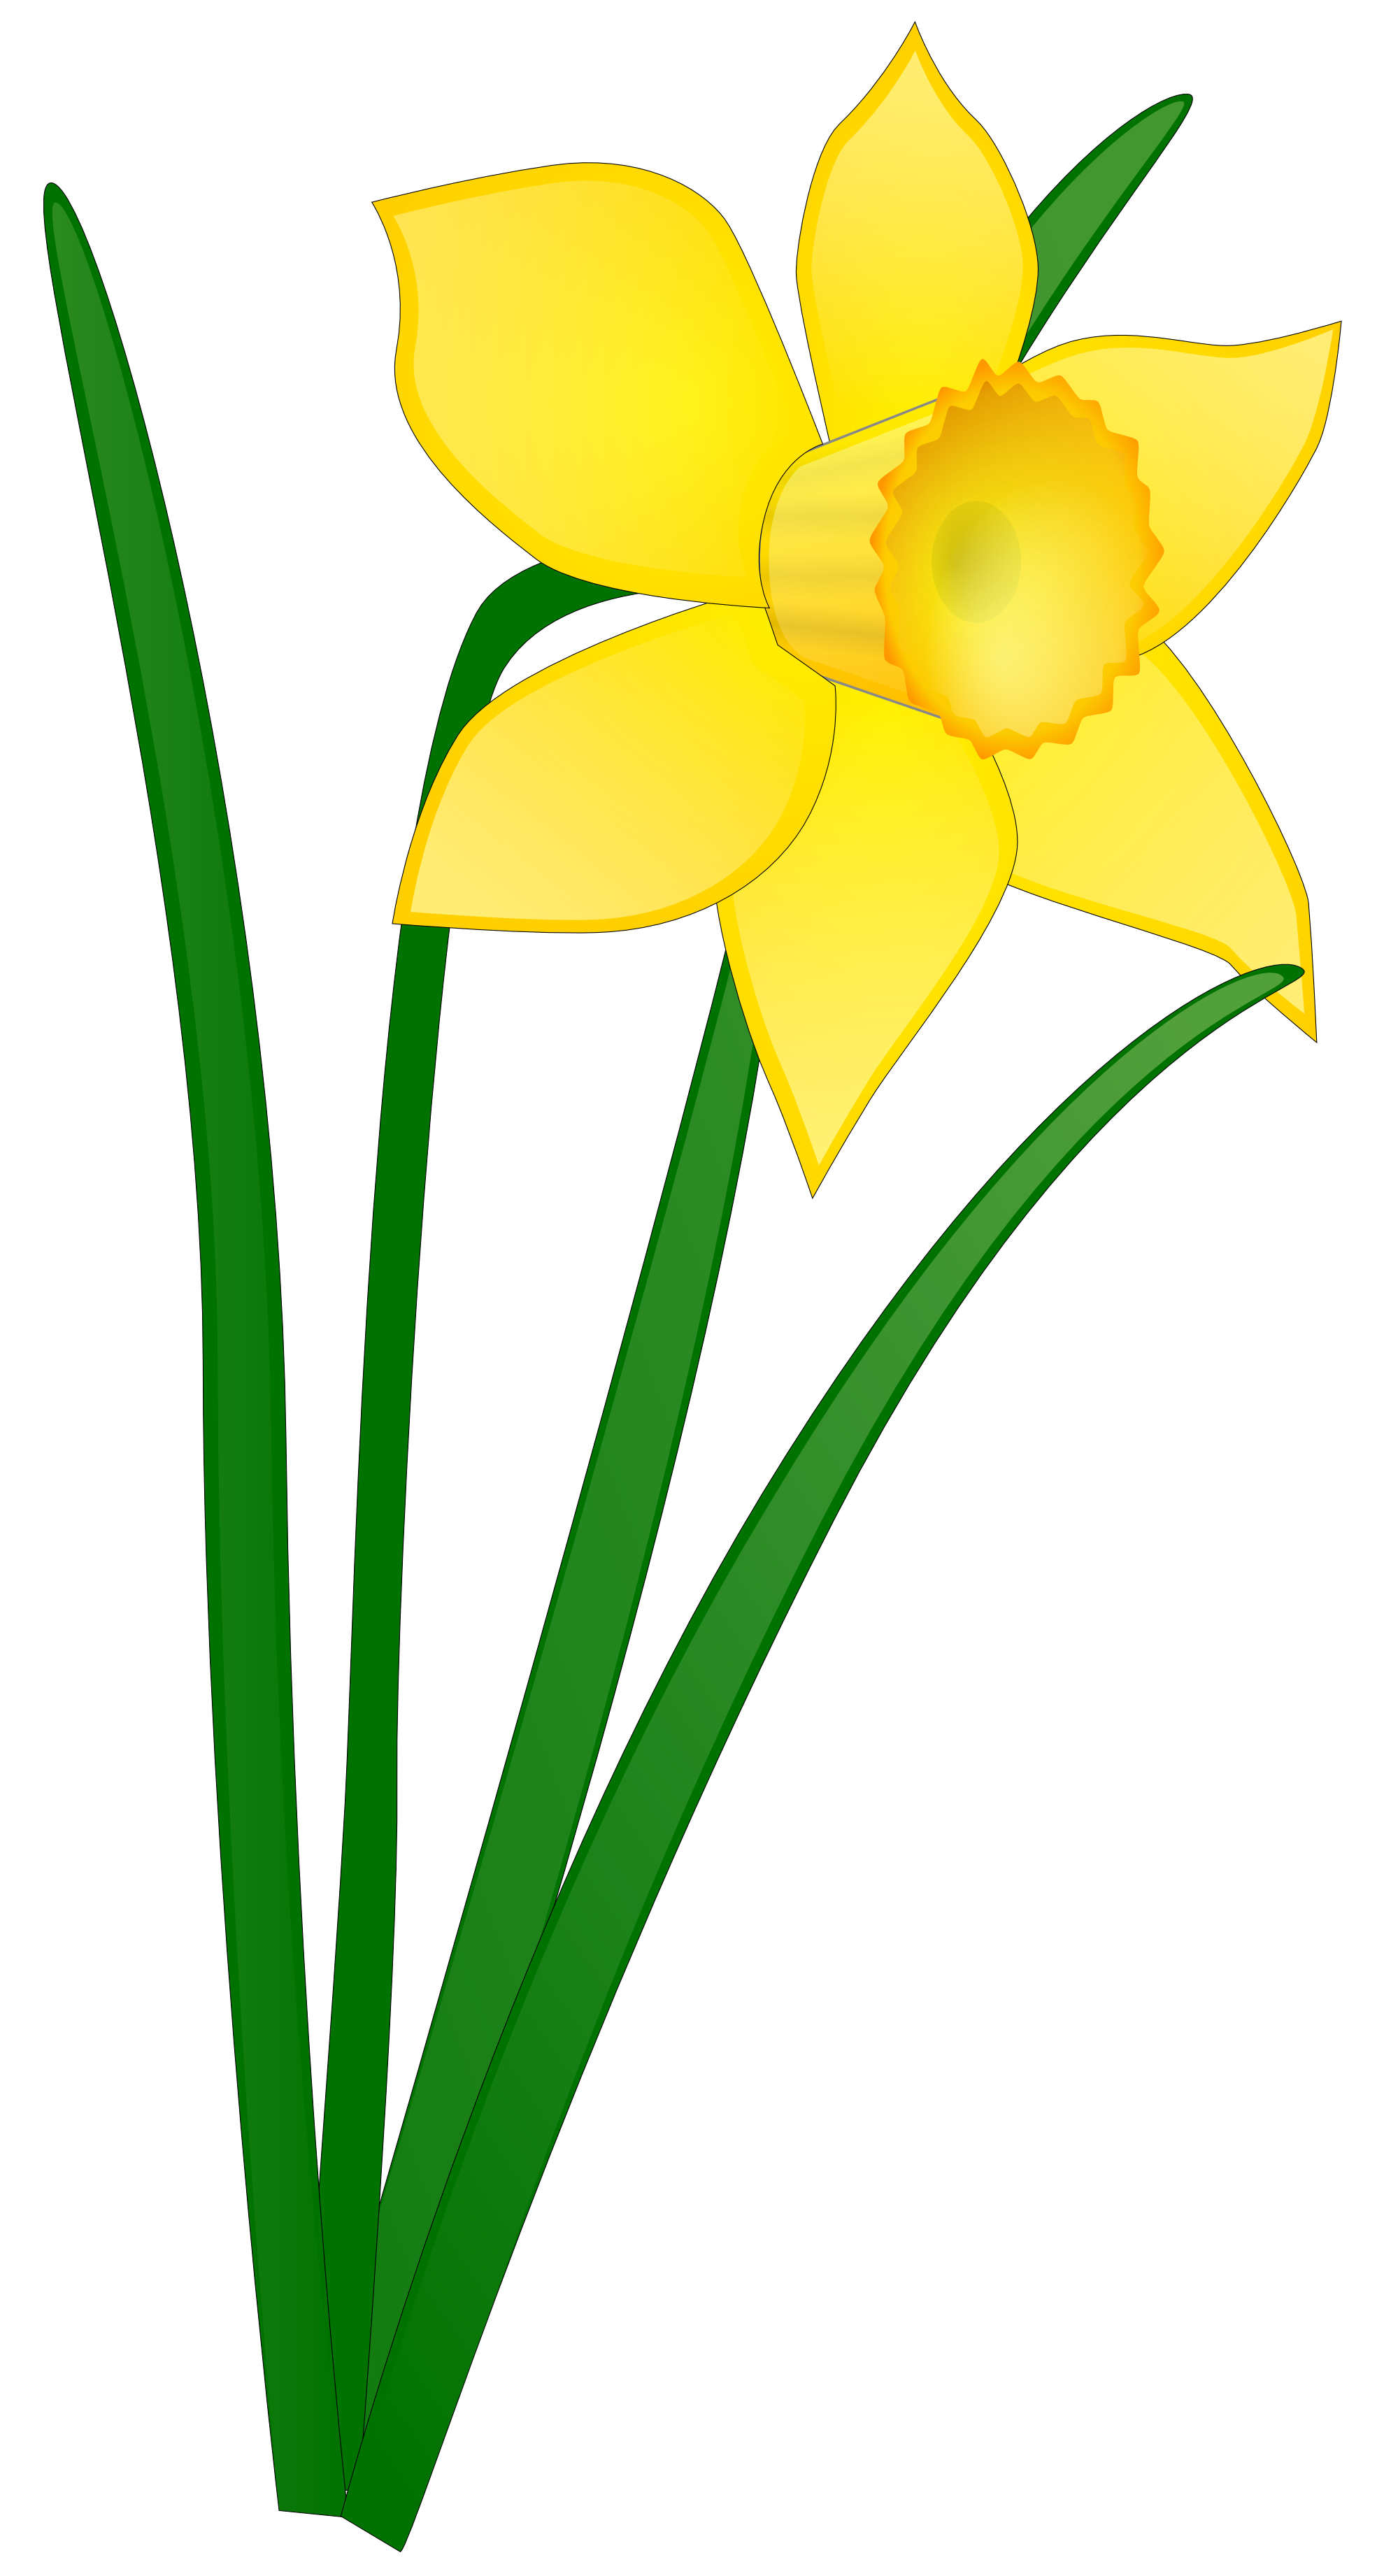 Daffodil clip art panda. Outside clipart field flower